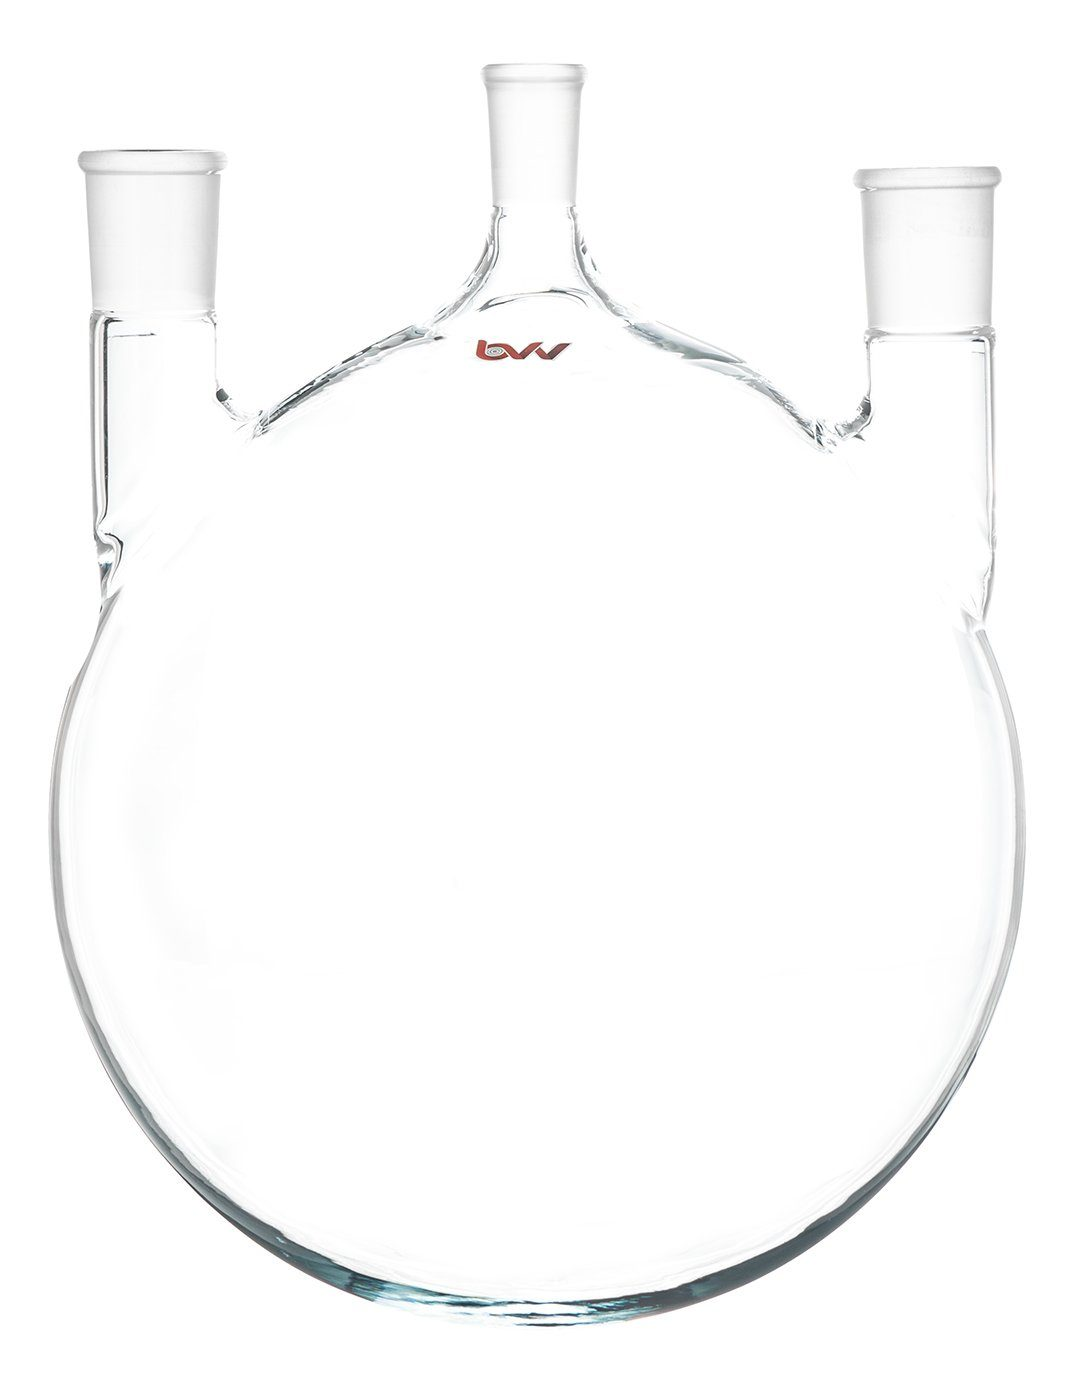 3 Neck Heavy Wall Round Bottom Flask - USA Made Shop All Categories BVV 10000ml